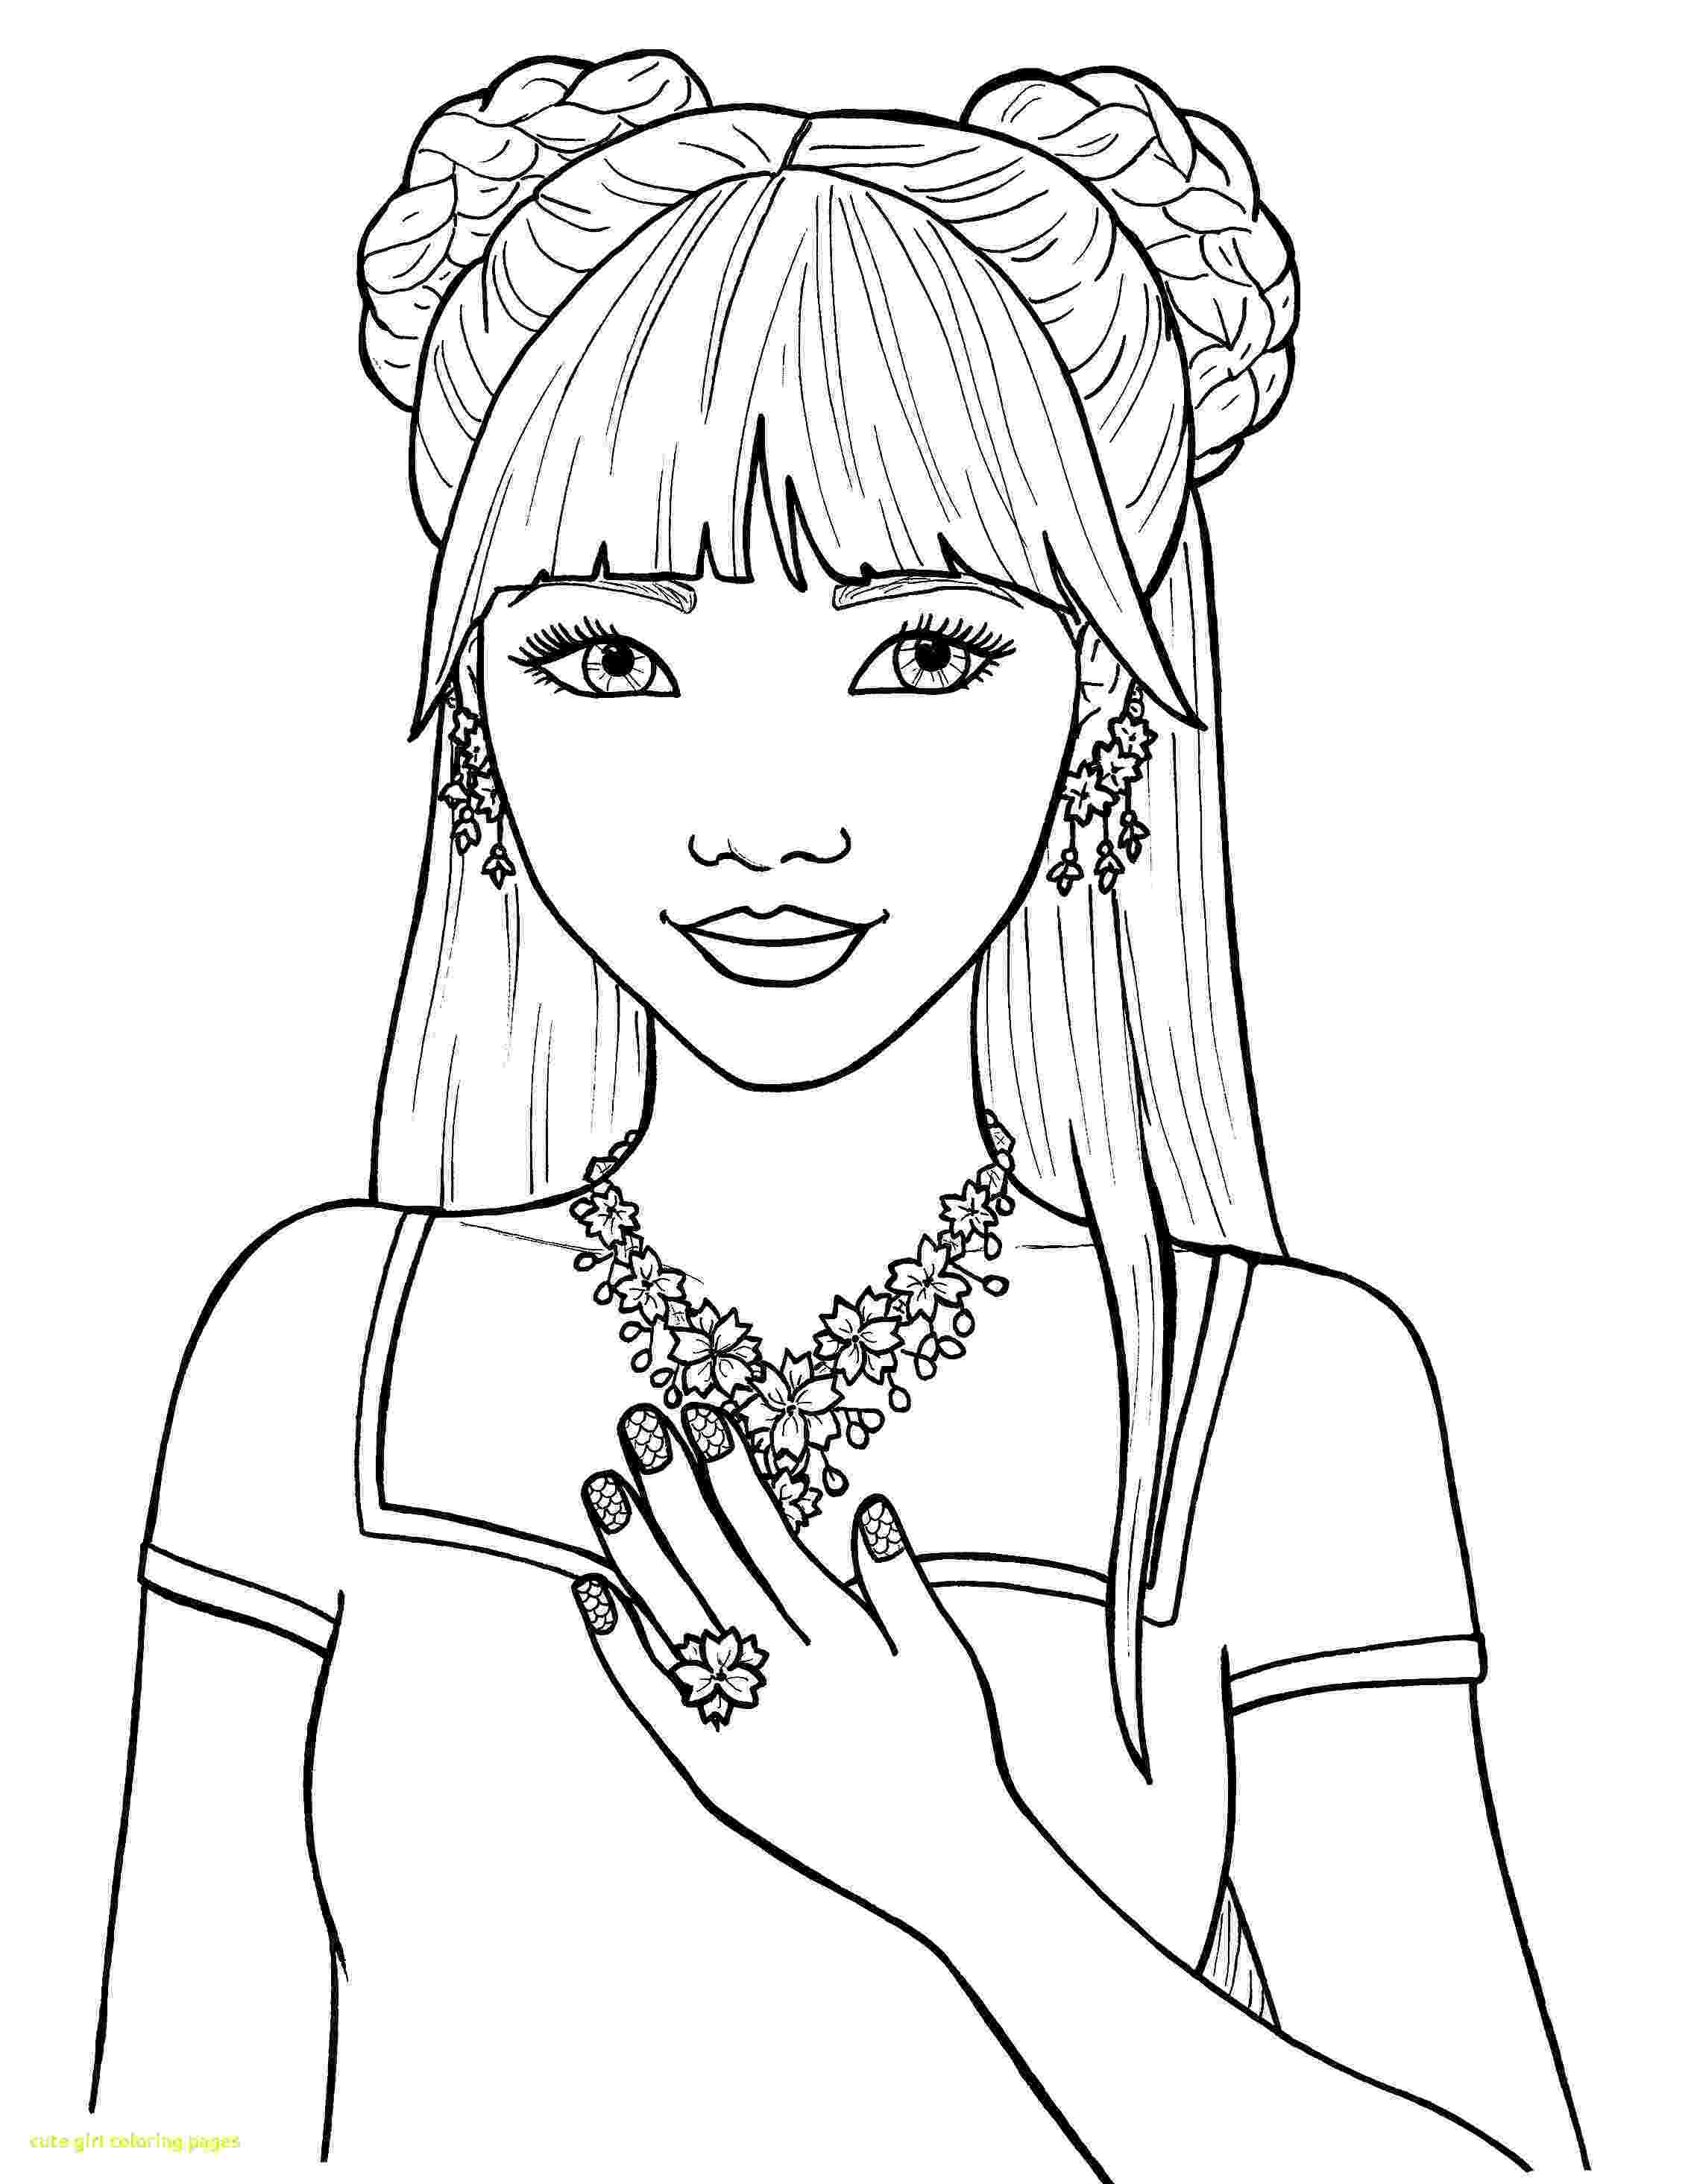 colering pages for girls cute girl coloring pages to download and print for free colering girls pages for